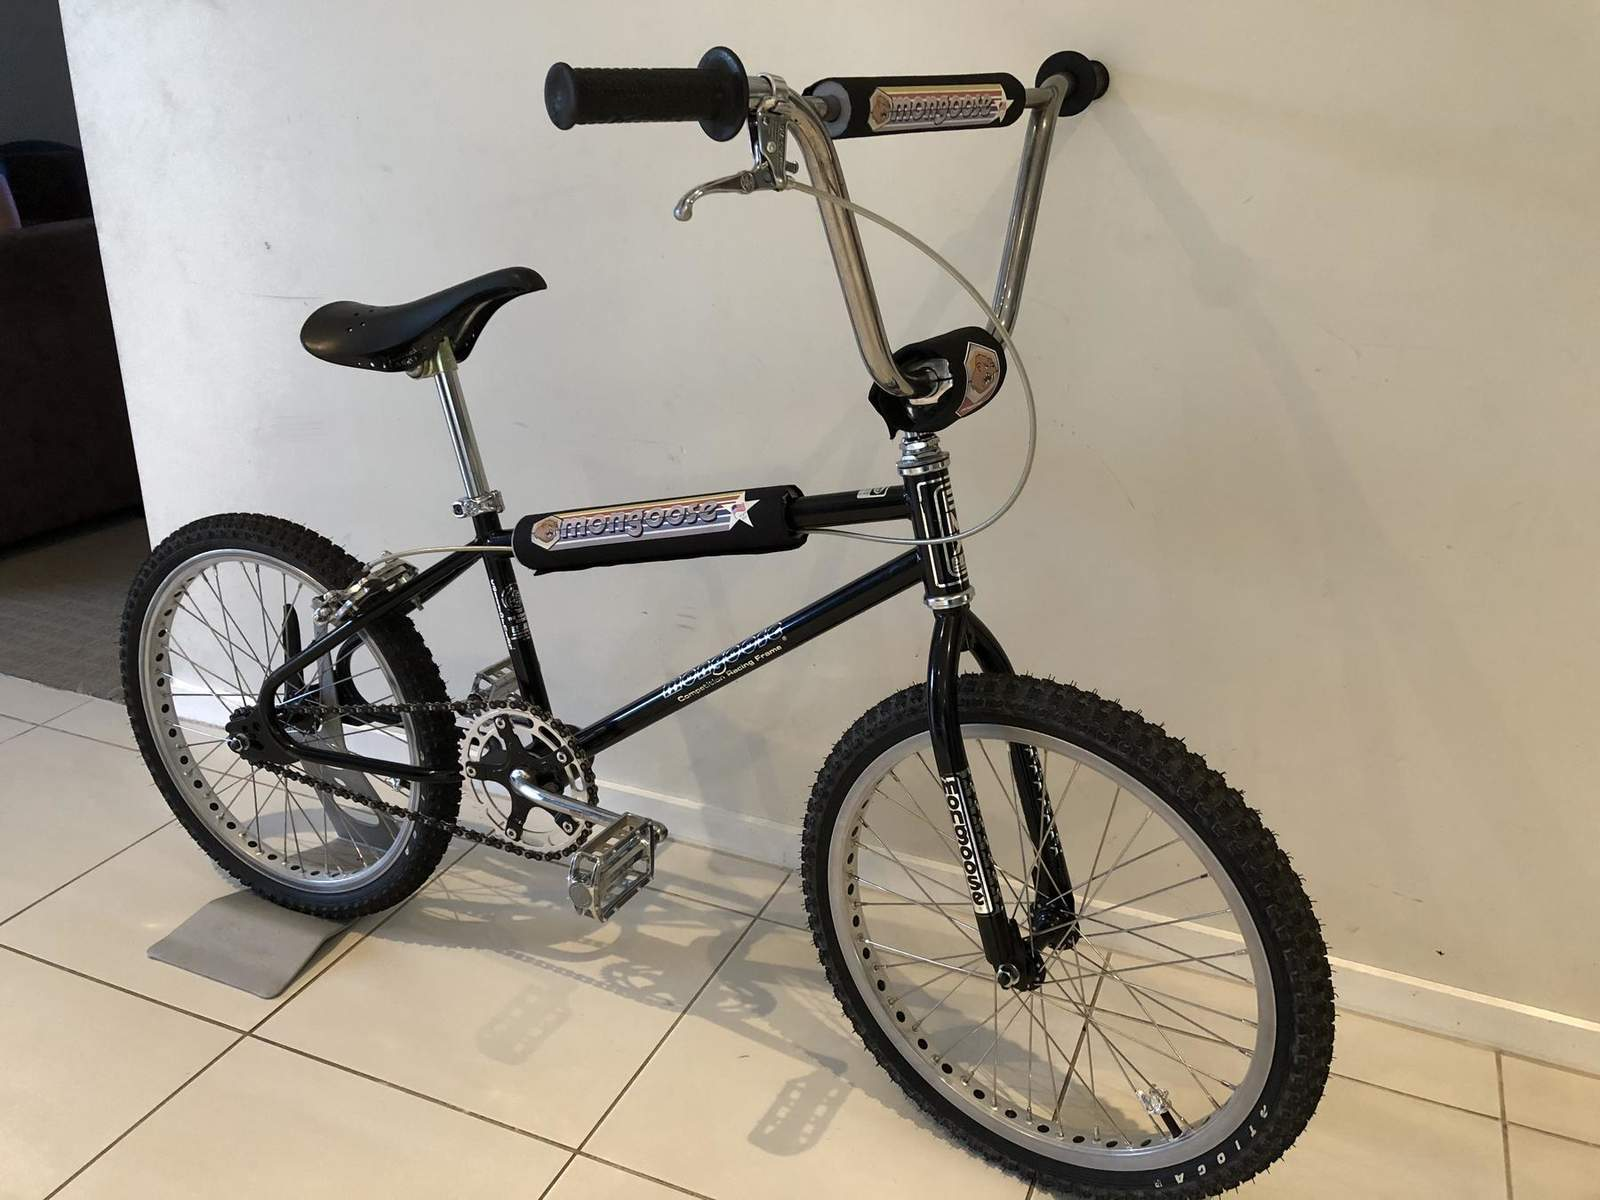 http://uploads.bmxmuseum.com/user-images/218631/84-californian5adec299d9.jpg